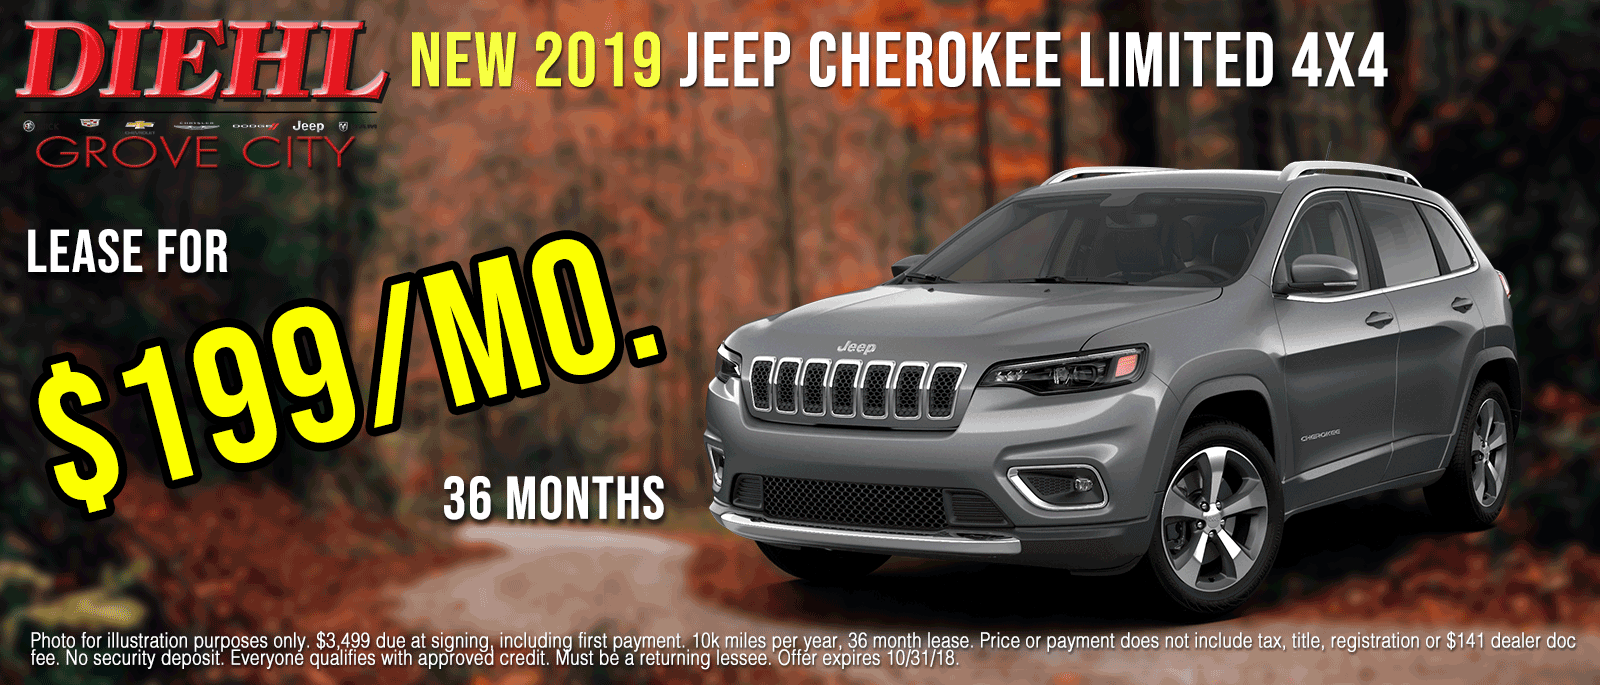 J1093-2019-Jeep-Cherokee-Limited-Oct Grove city new vehicle specials diehl of grove city new vehicle specials jeep specials ram specials dodge specials Chrysler specials new specials cdjr specials diehl auto diehl specials grove city pa